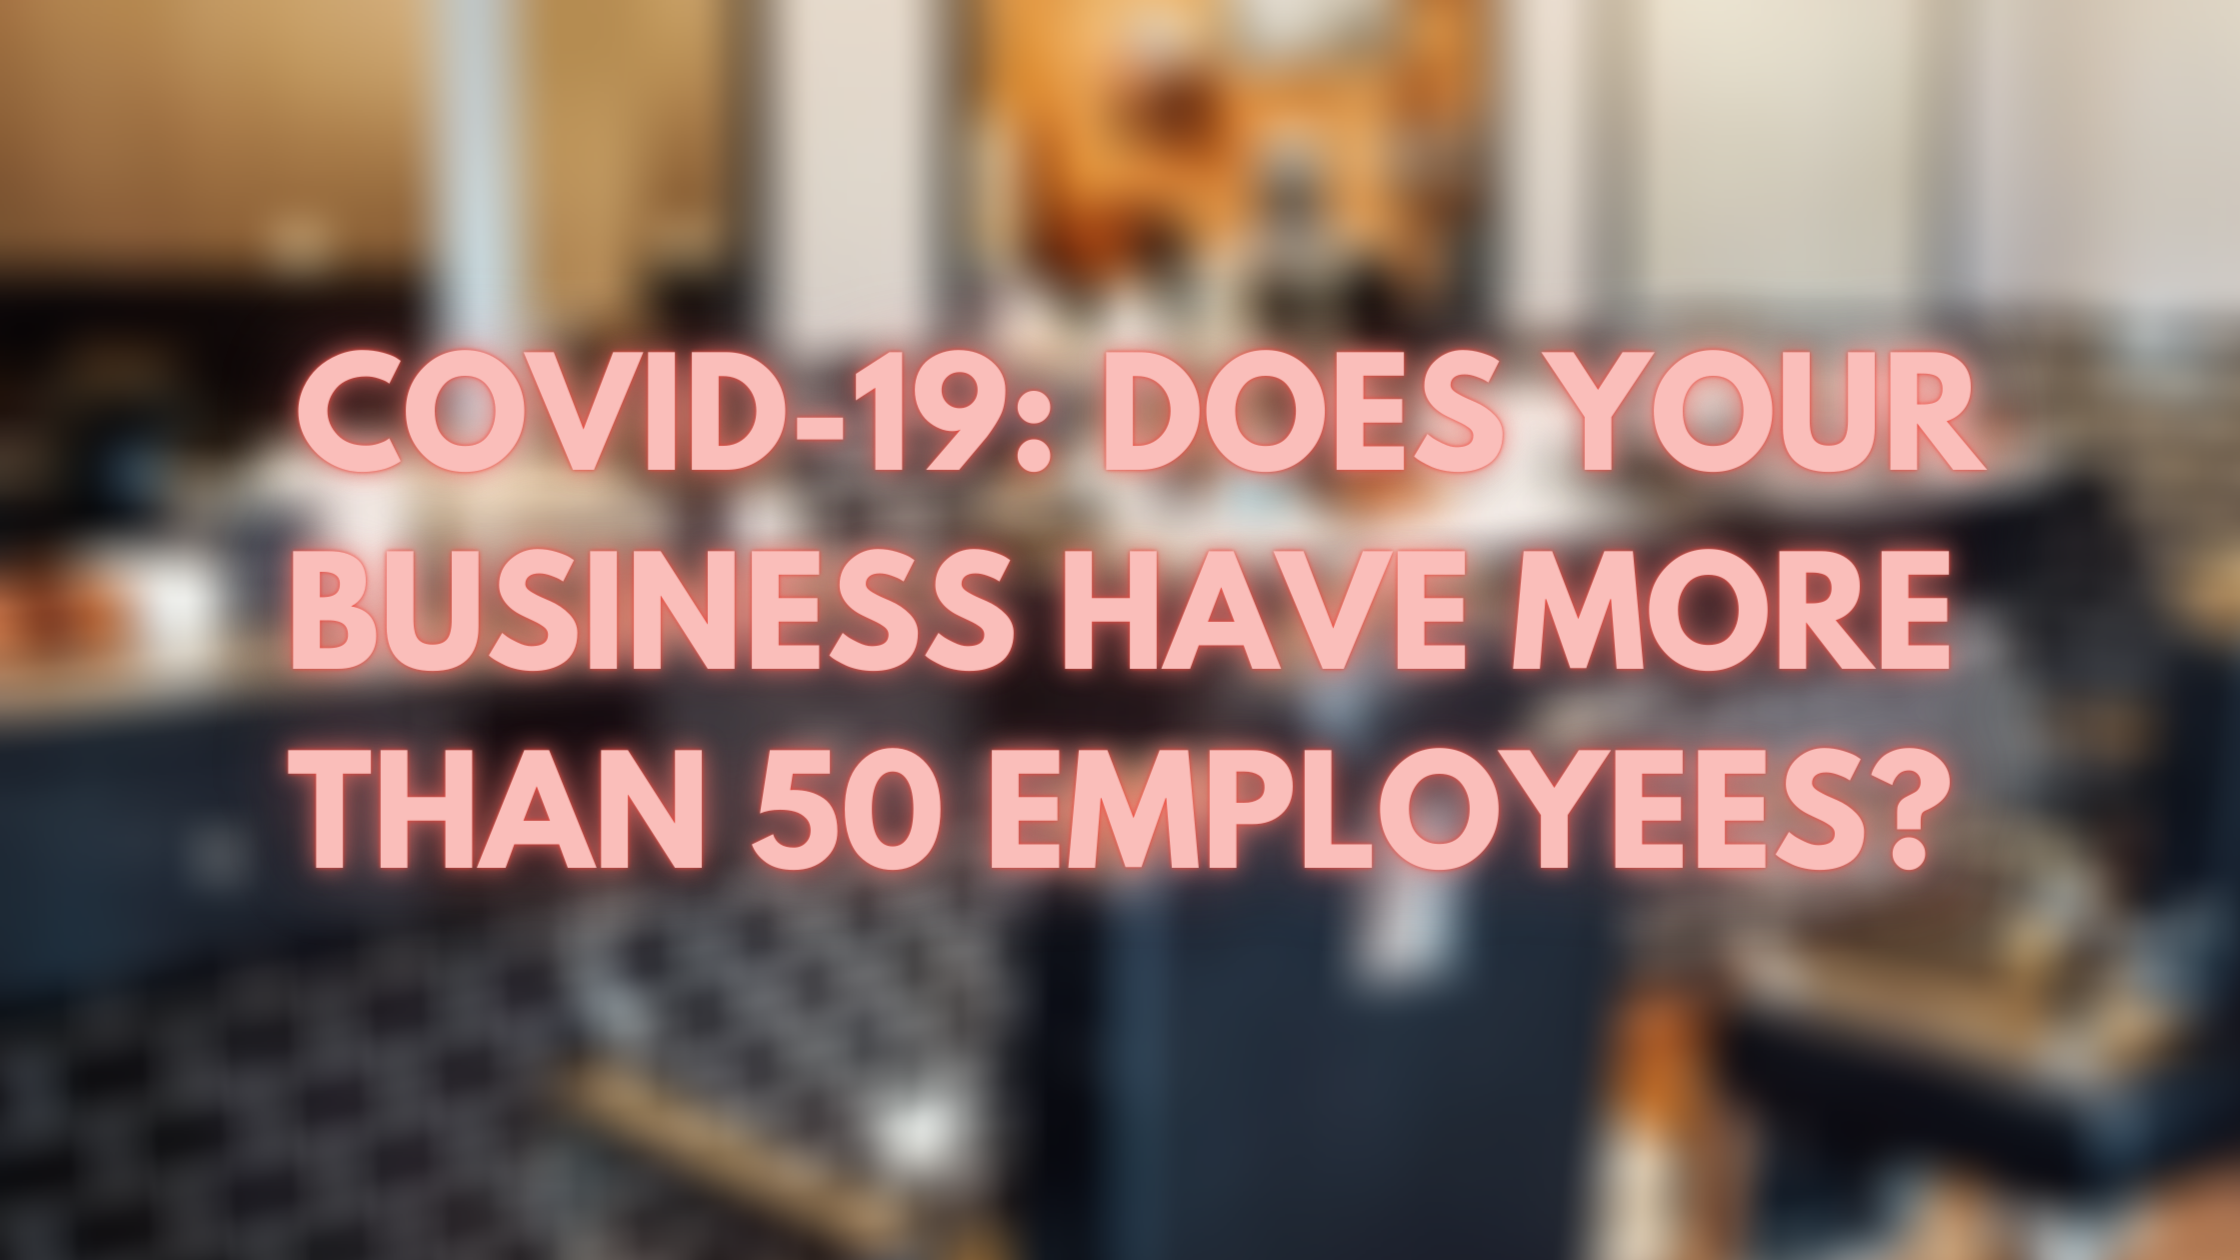 COVID-19: Does your business have more than 50 employees?